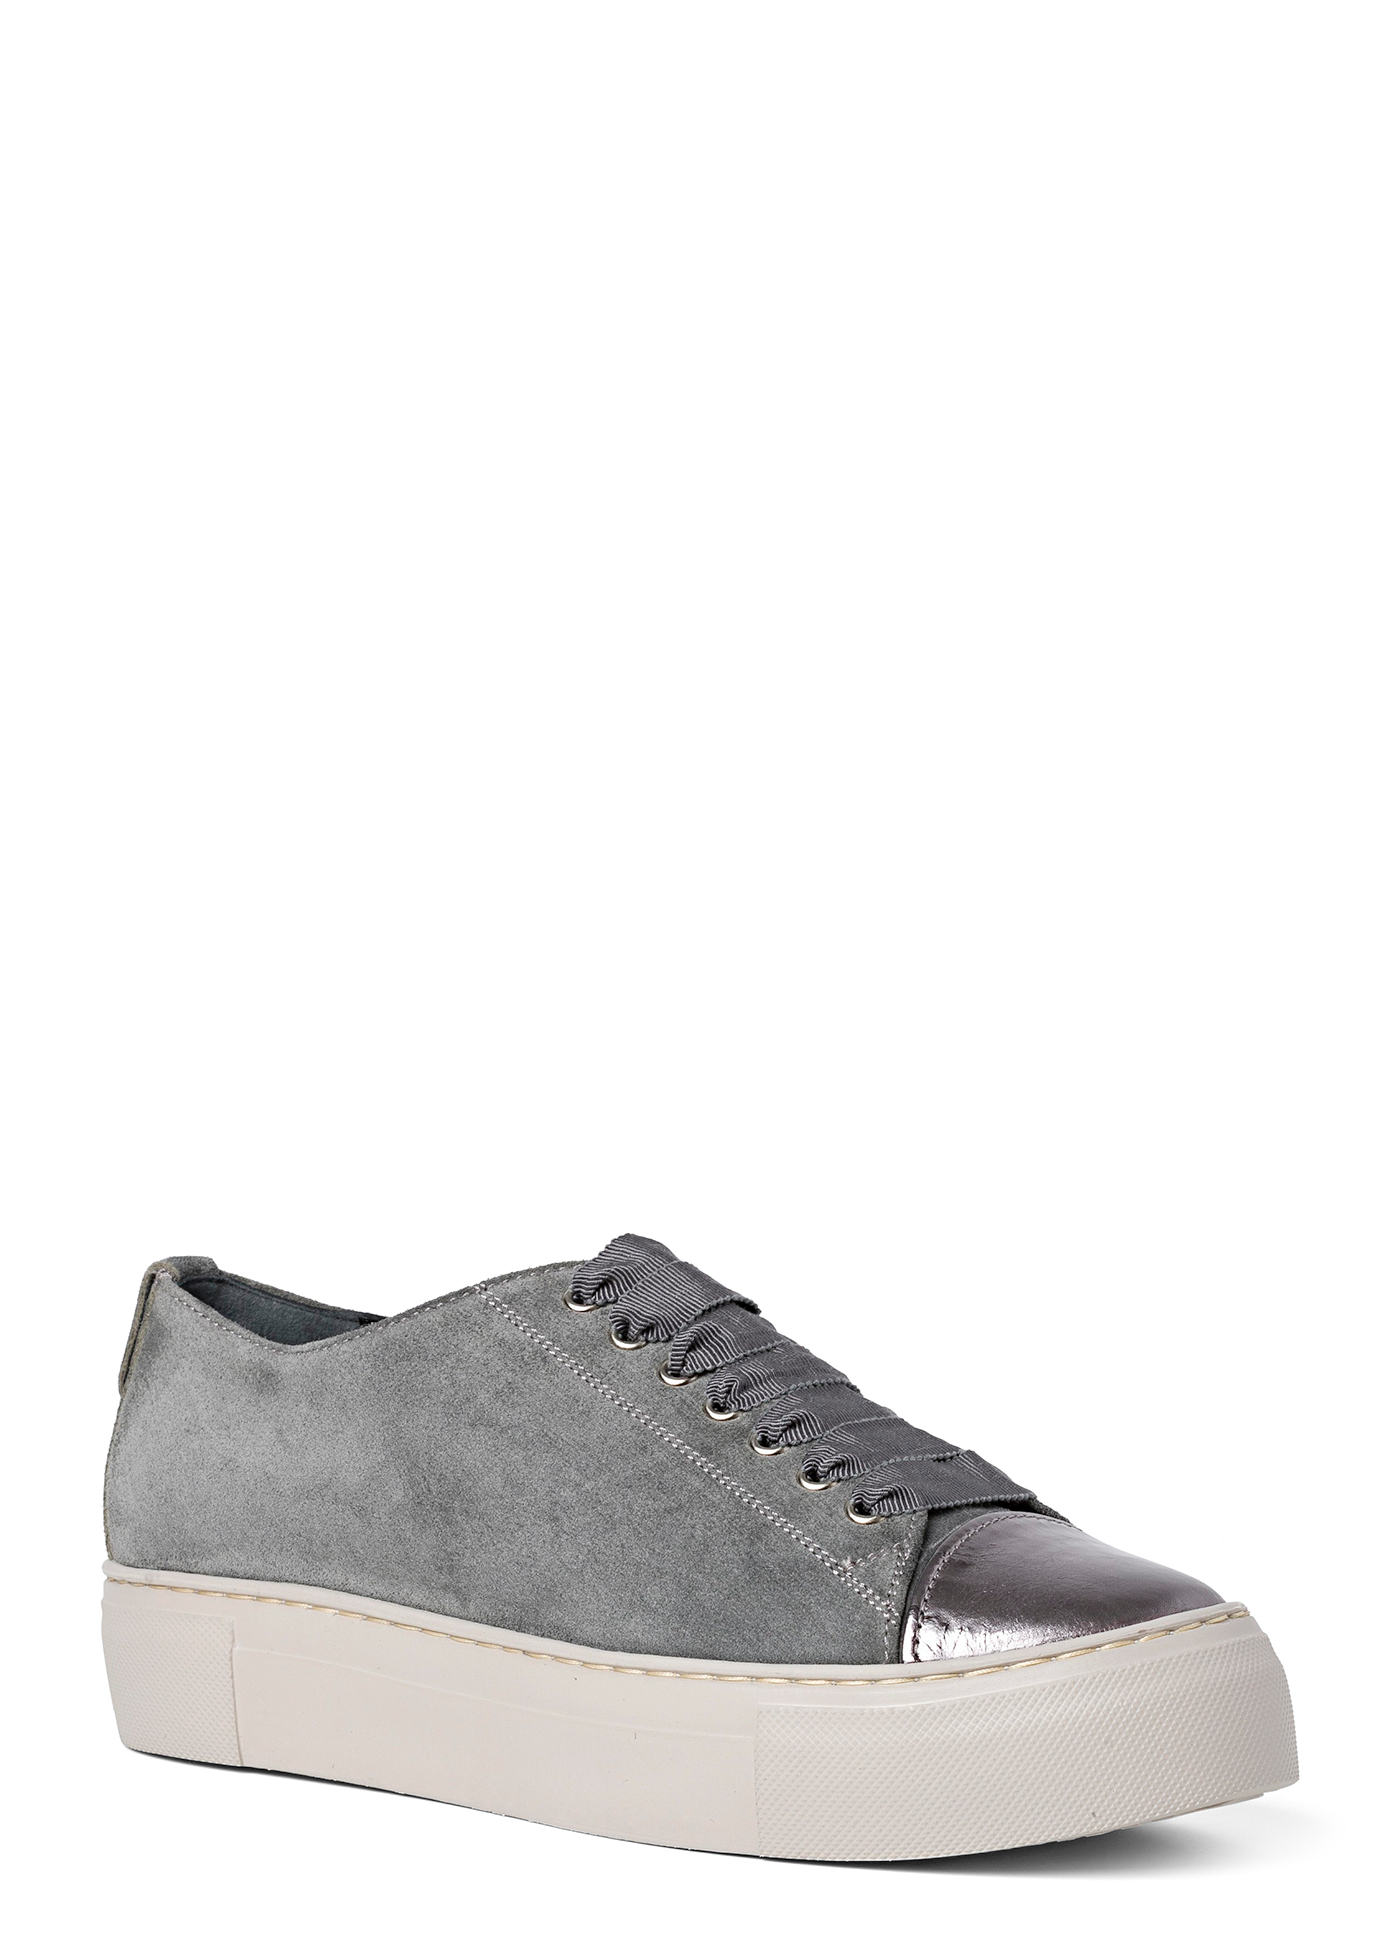 MOLLIE Sneaker Glanz image number 1